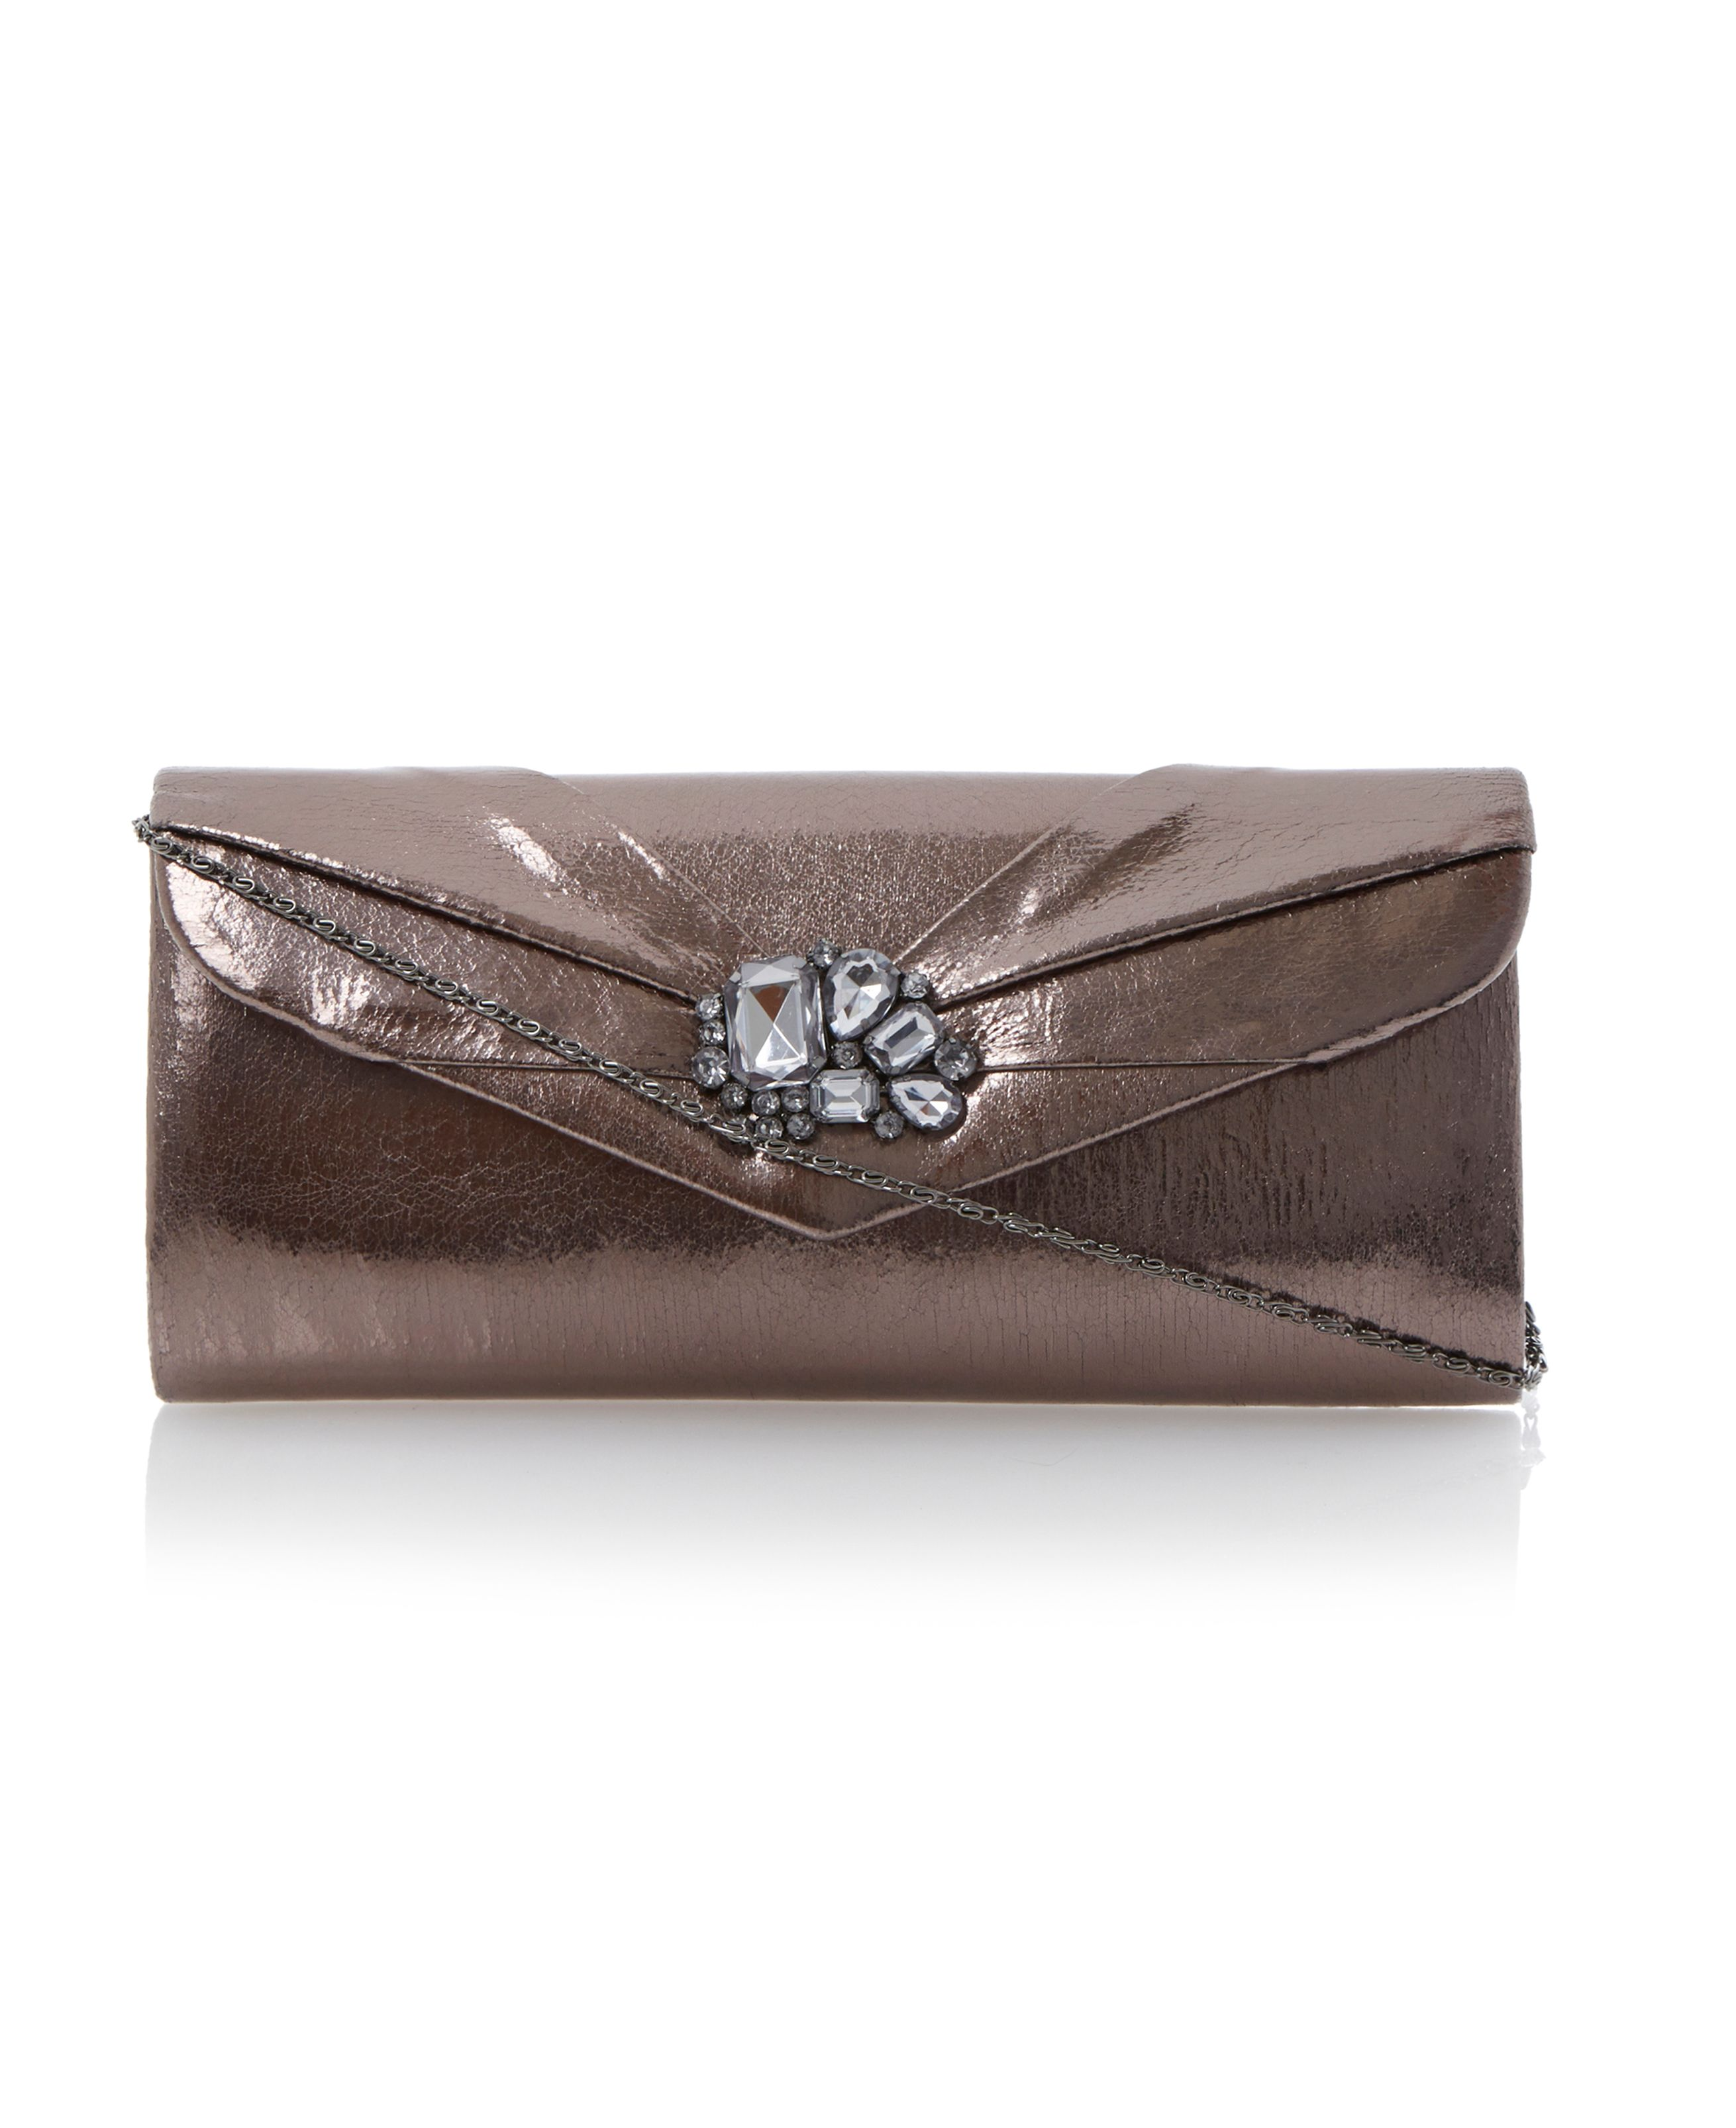 Bamera pleated trim bag